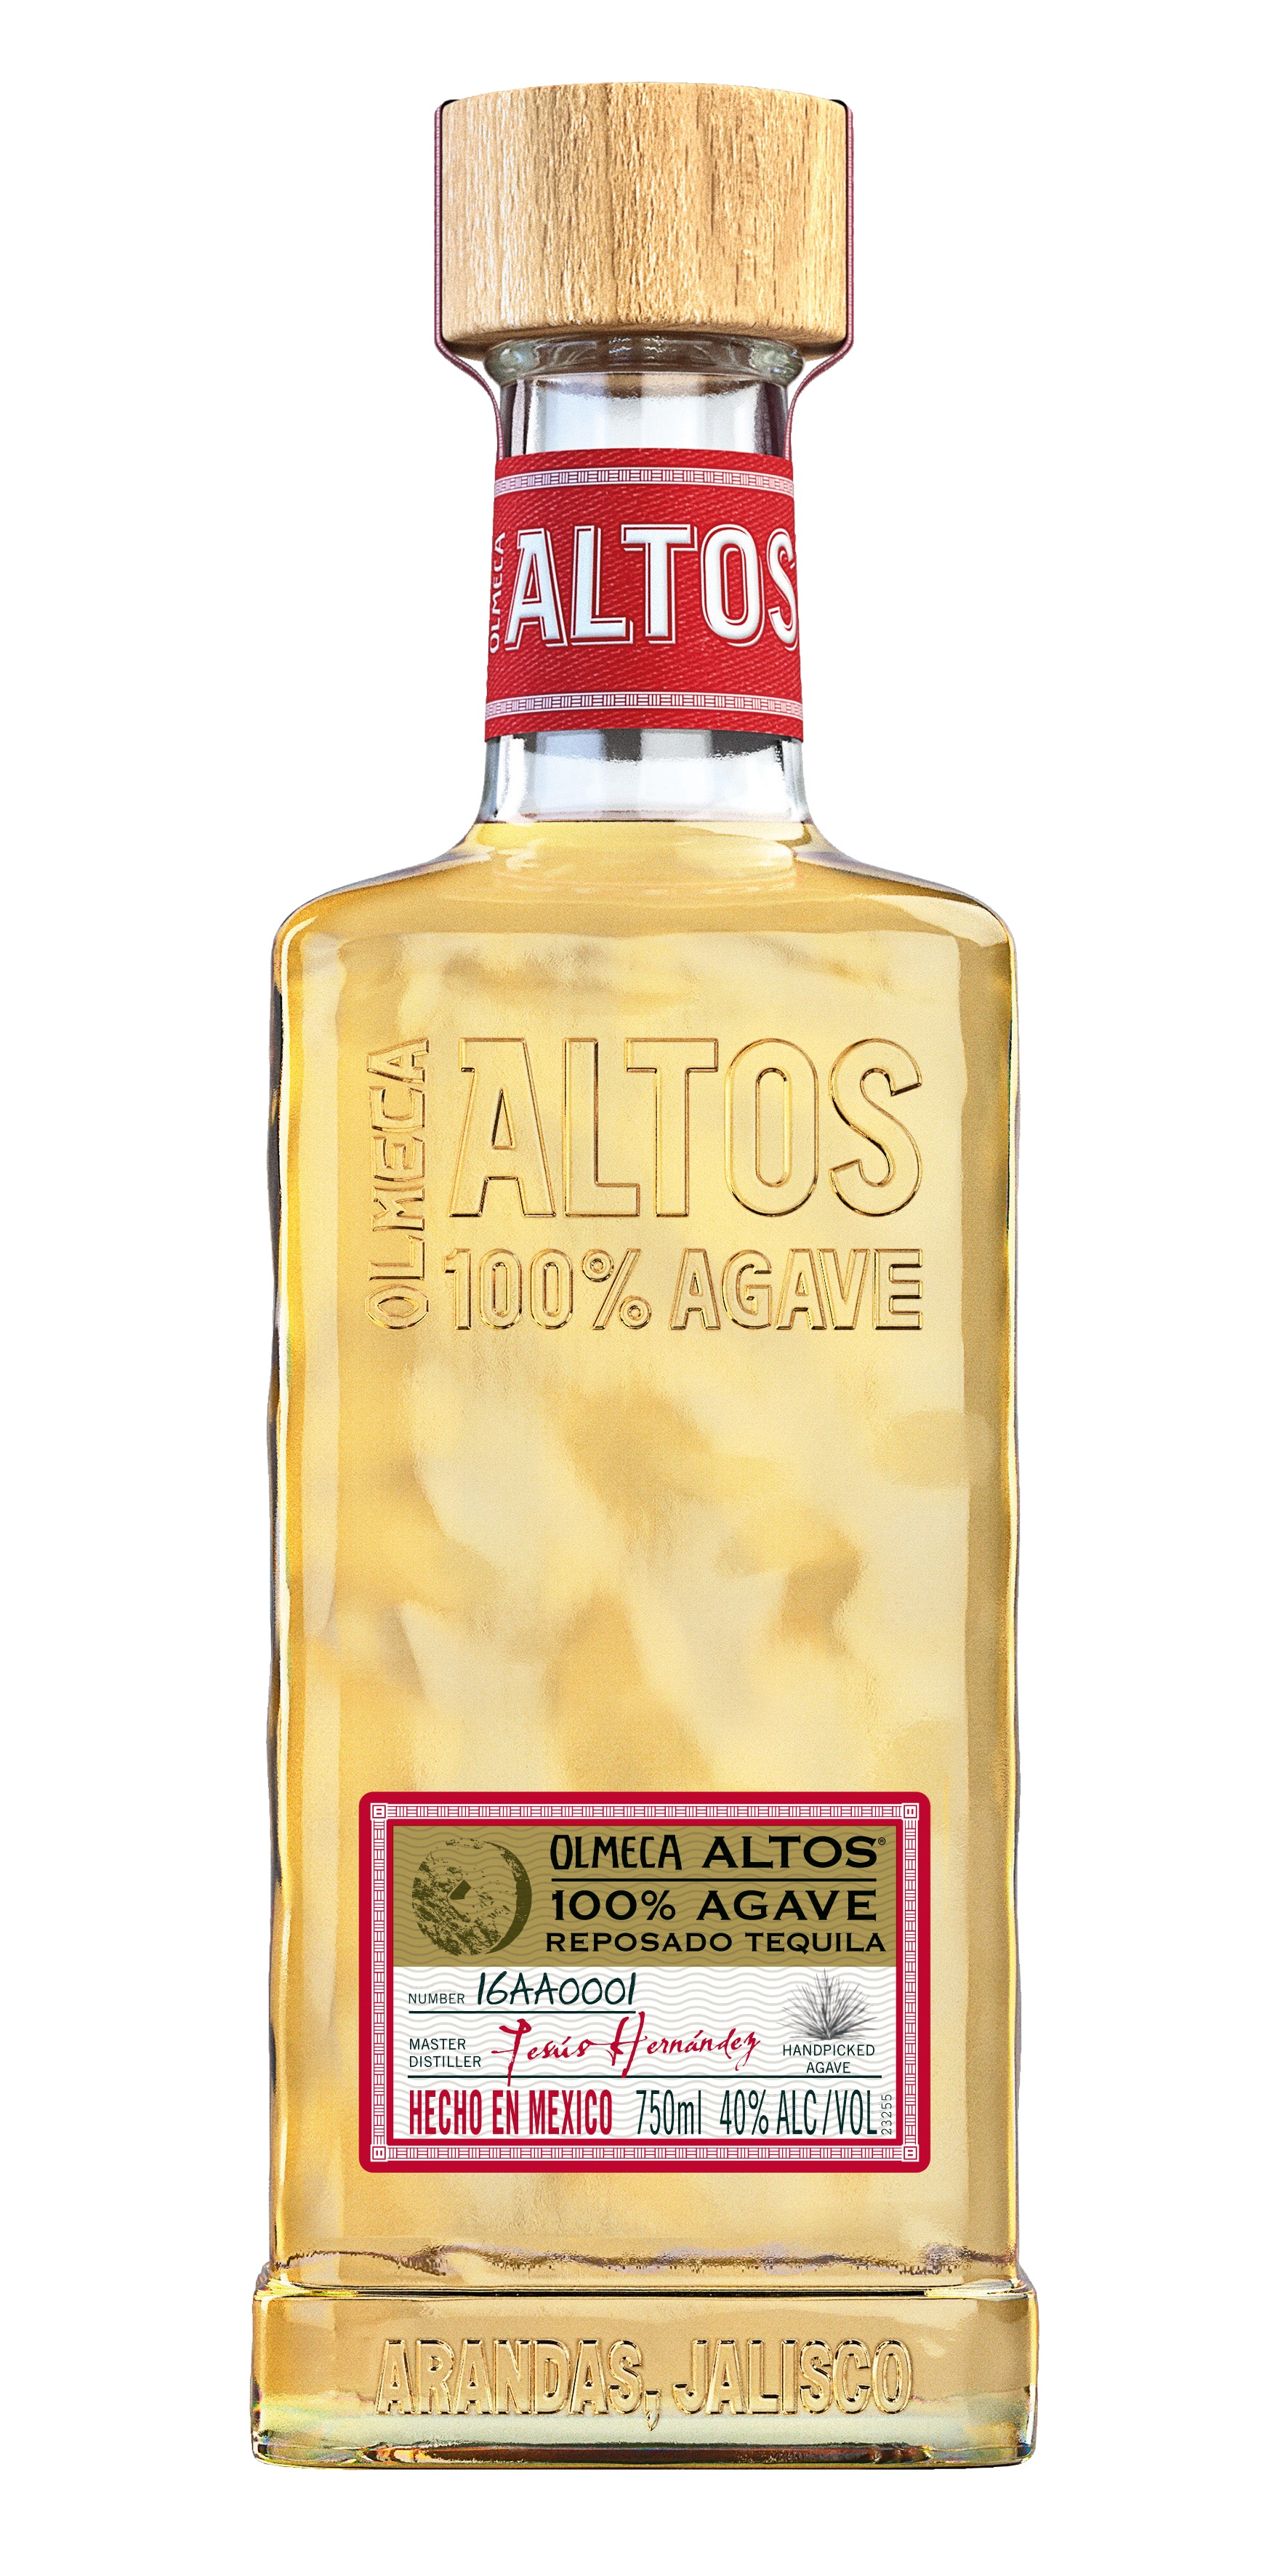 Altos Reposado Tequila